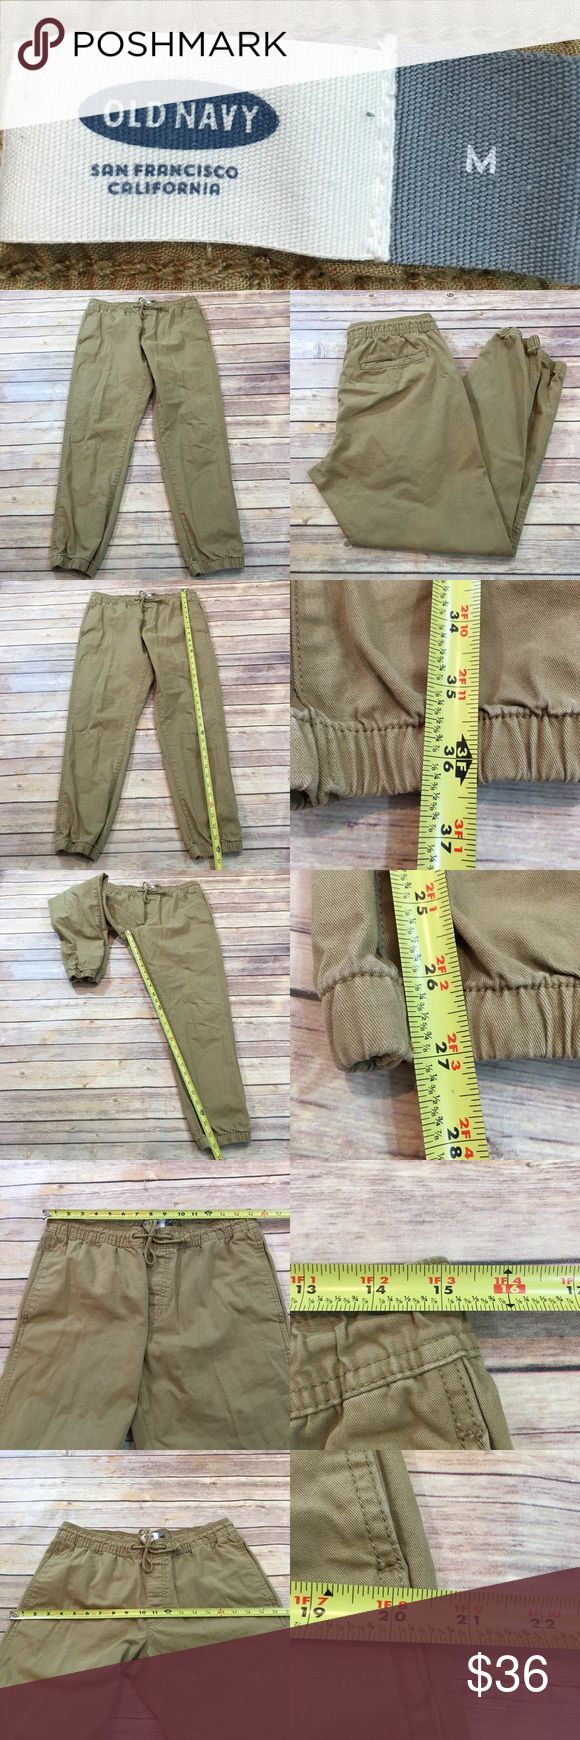 🌳Size Medium Old Navy Joggers Men's Khaki Pants Measurements are in photos. Normal wash wear, no flaws. D3/58  I do not comment to my buyers after purchases, due to their privacy. If you would like any reassurance after your purchase that I did receive your order, please feel free to comment on the listing and I will promptly respond.   I ship everyday and I always package safely. Thank you for shopping my closet! Old Navy Pants Sweatpants & Joggers